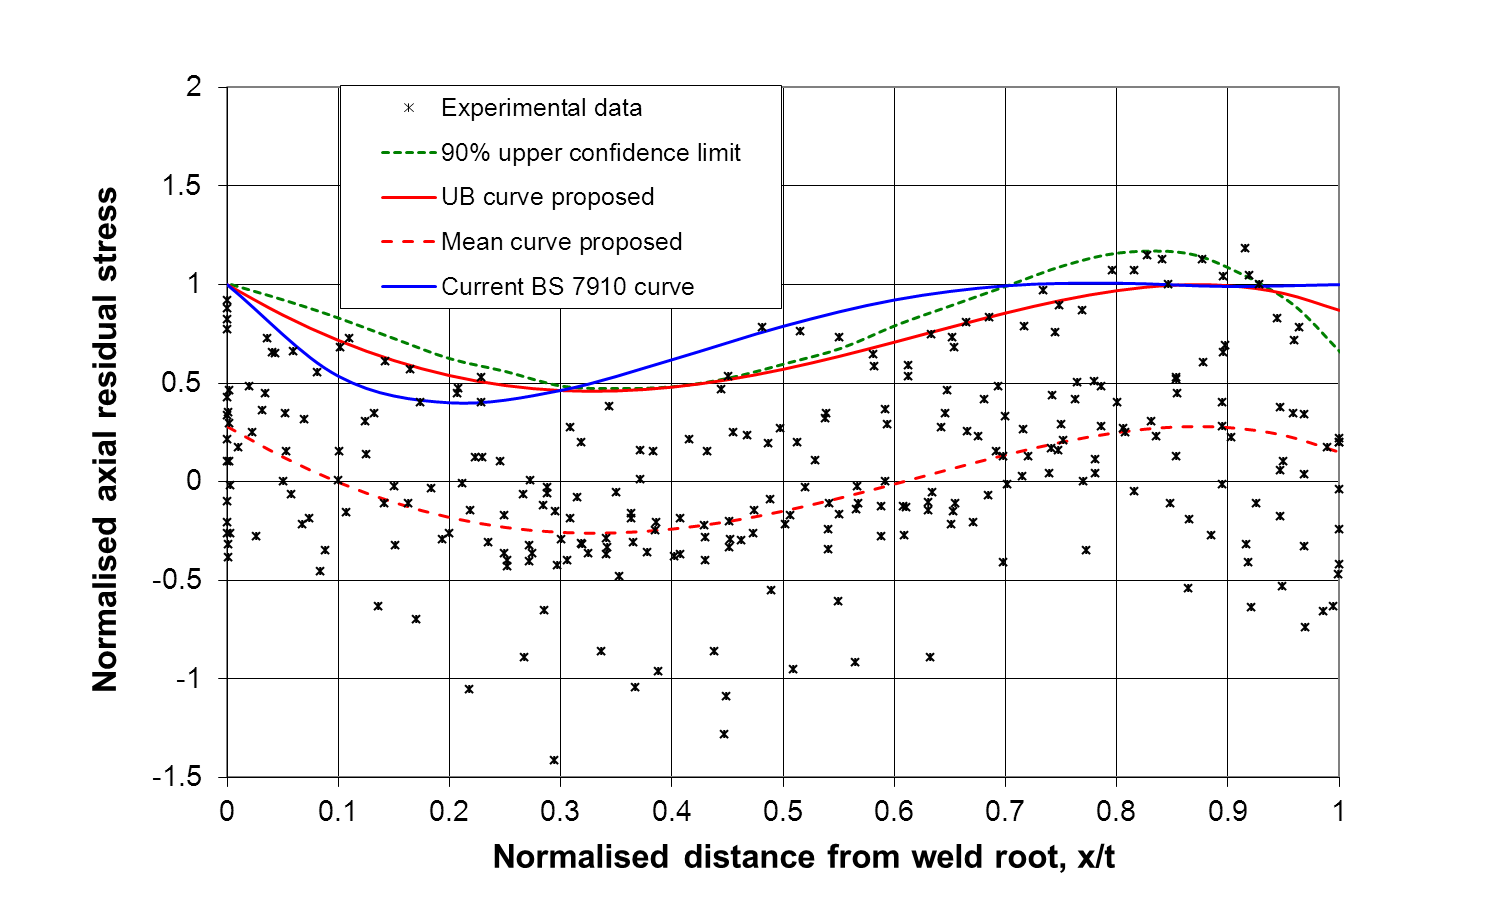 FIGURE 10 Comparison of the recommended upper bound (UB) residual stress (RS) distribution curve (red, solid line) with the database and the others.